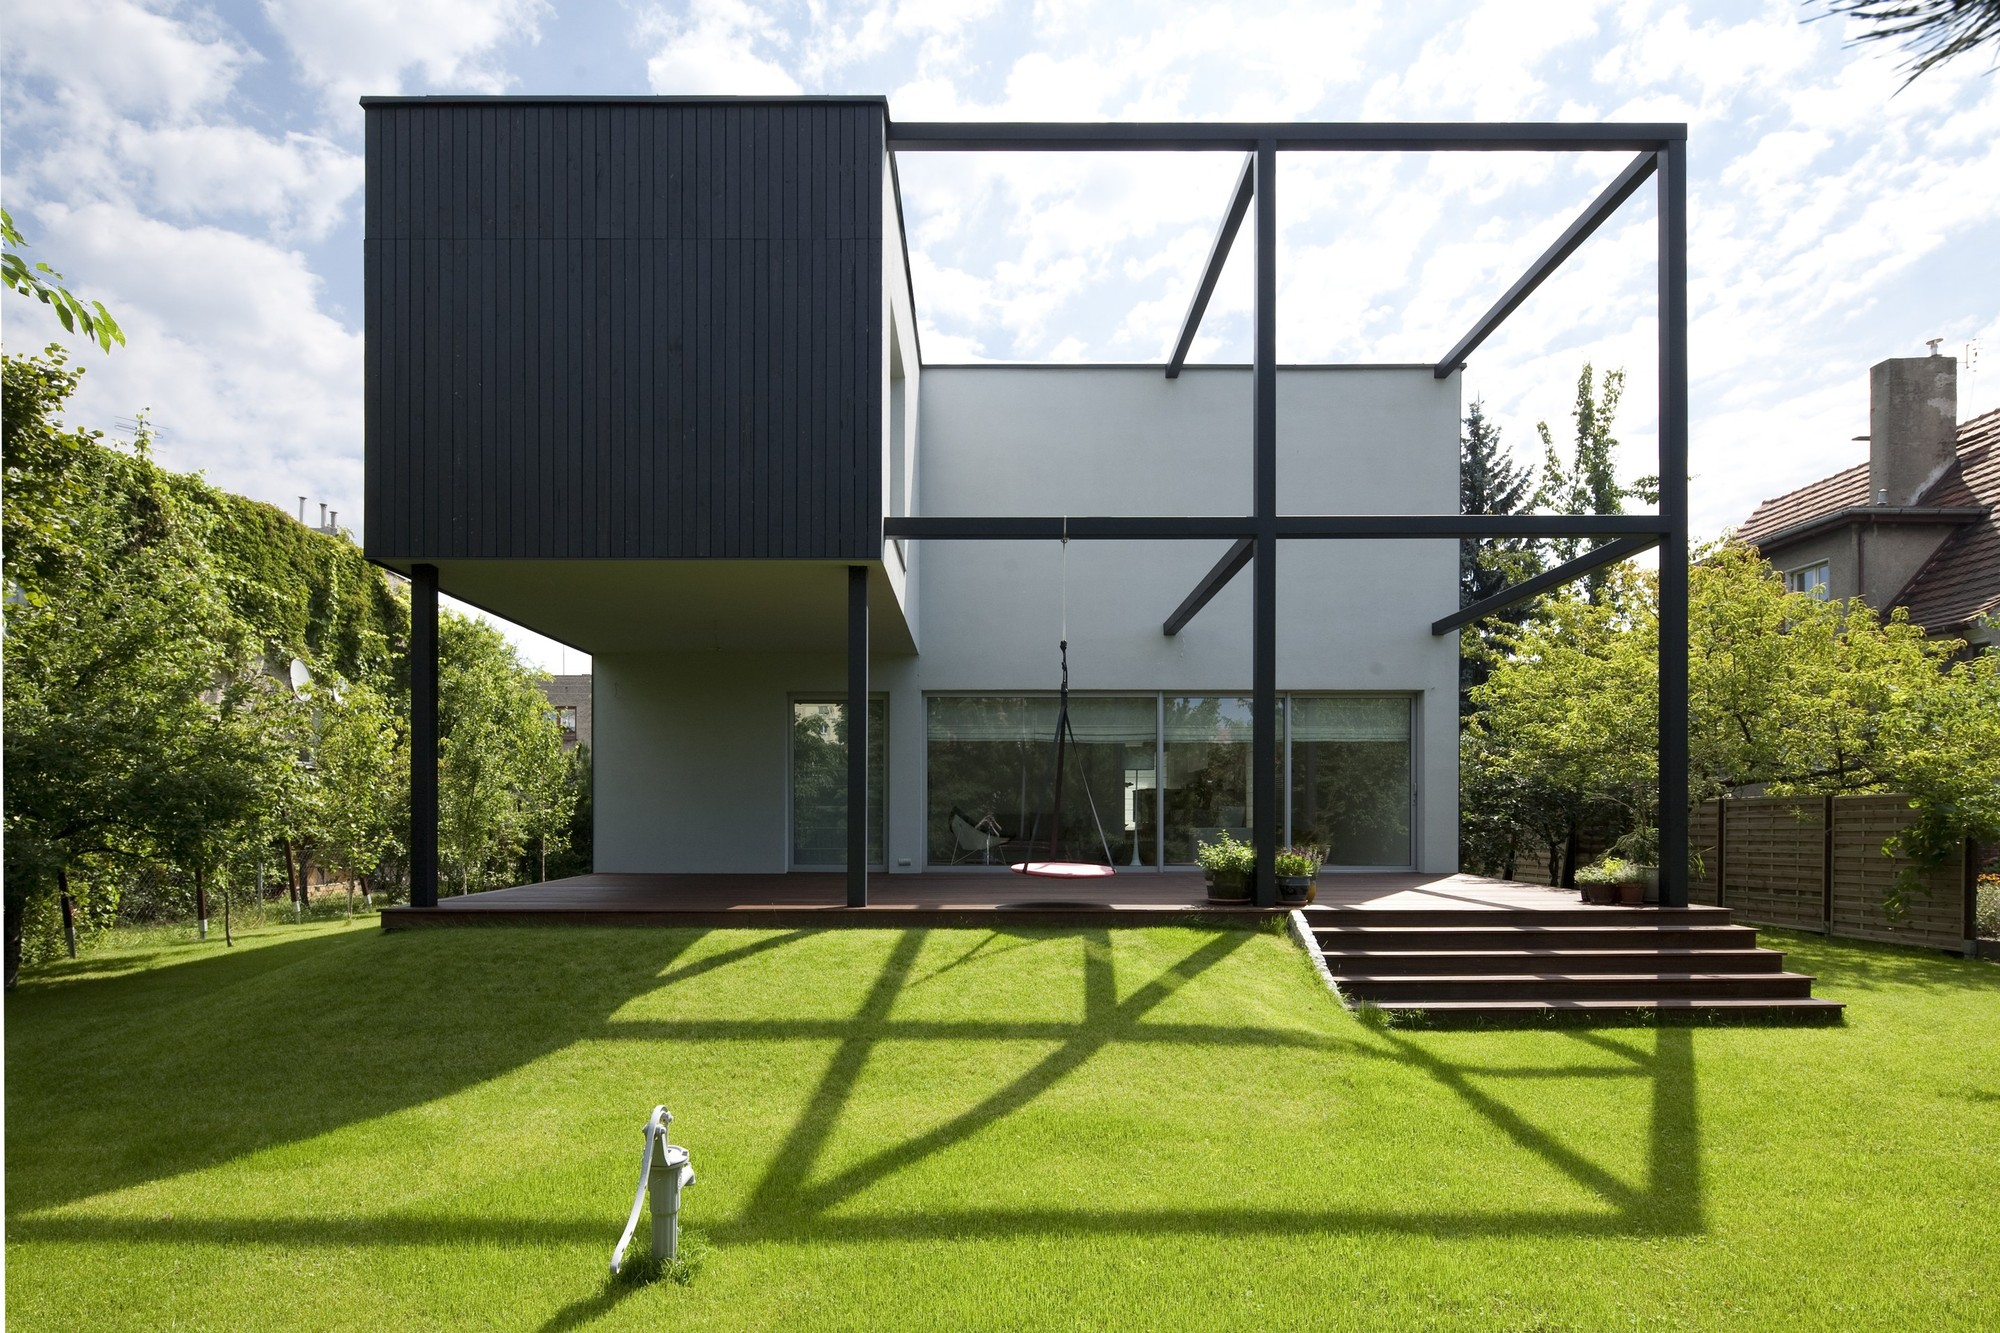 Black cube house kameleonlab archdaily for Modern cube house plans